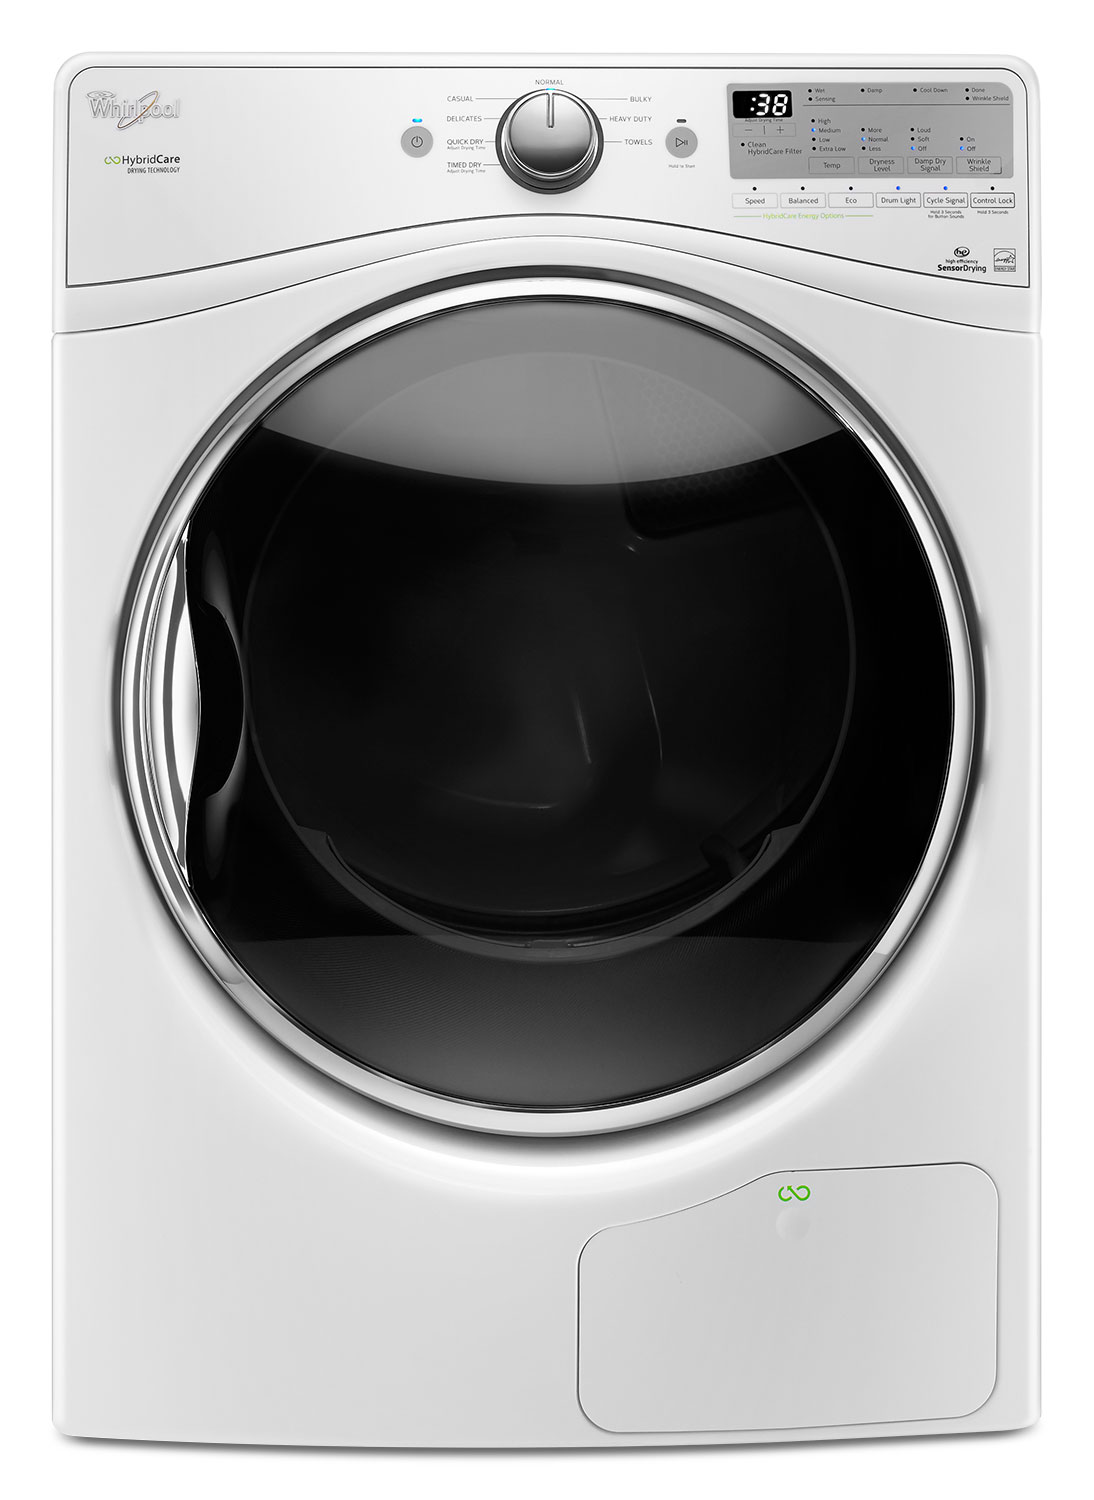 Washers and Dryers - Whirlpool 7.4 Cu. Ft. Ventless Electric Dryer – YWED9290FW